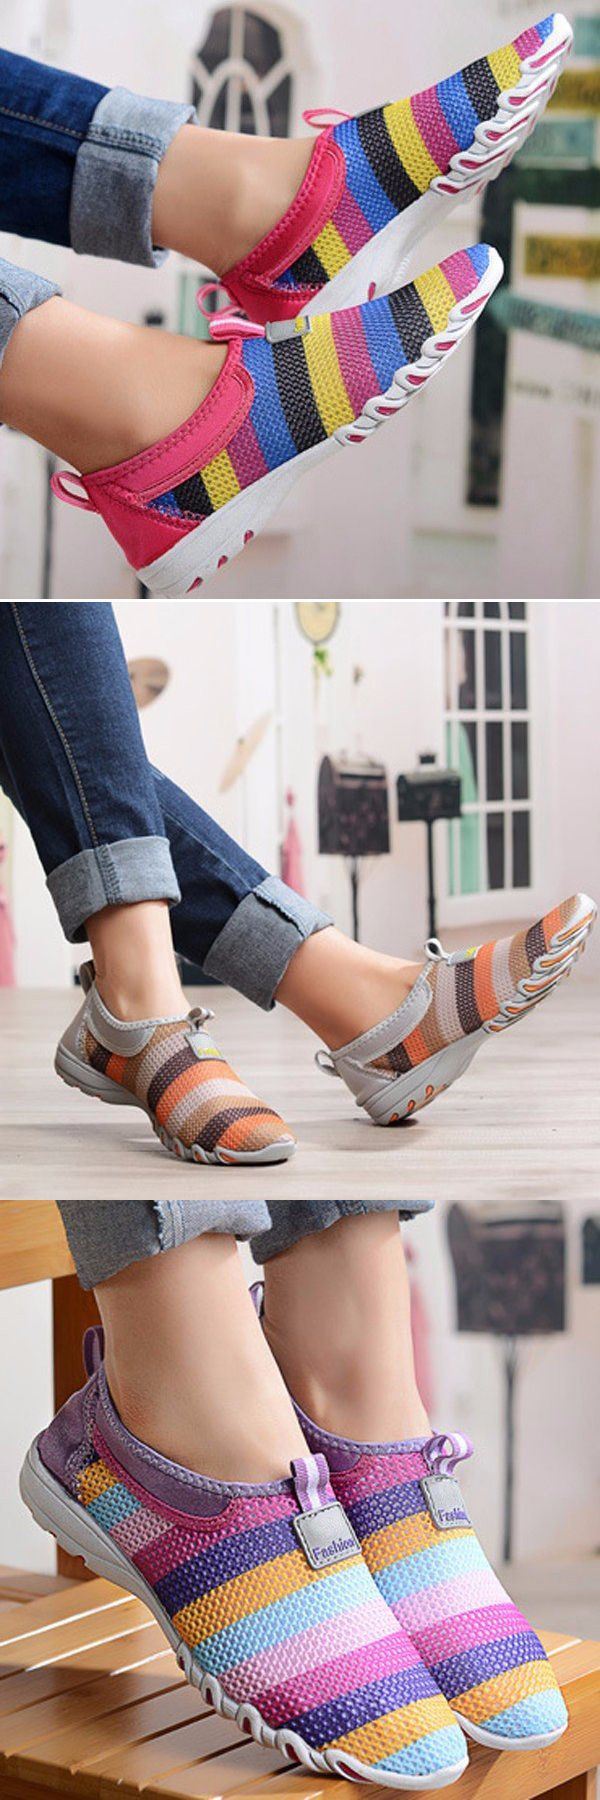 $17.74  Hot Sale Rainbow Colorful Striper Mesh For Women Breathable Slip On Flat Sport Shoes   women's flat shoes  flat shoes women  womens flats  casual sport shoes women  flat sport shoes  women outdoor shoes travel shoes women  sport shoes female sporty shoes  